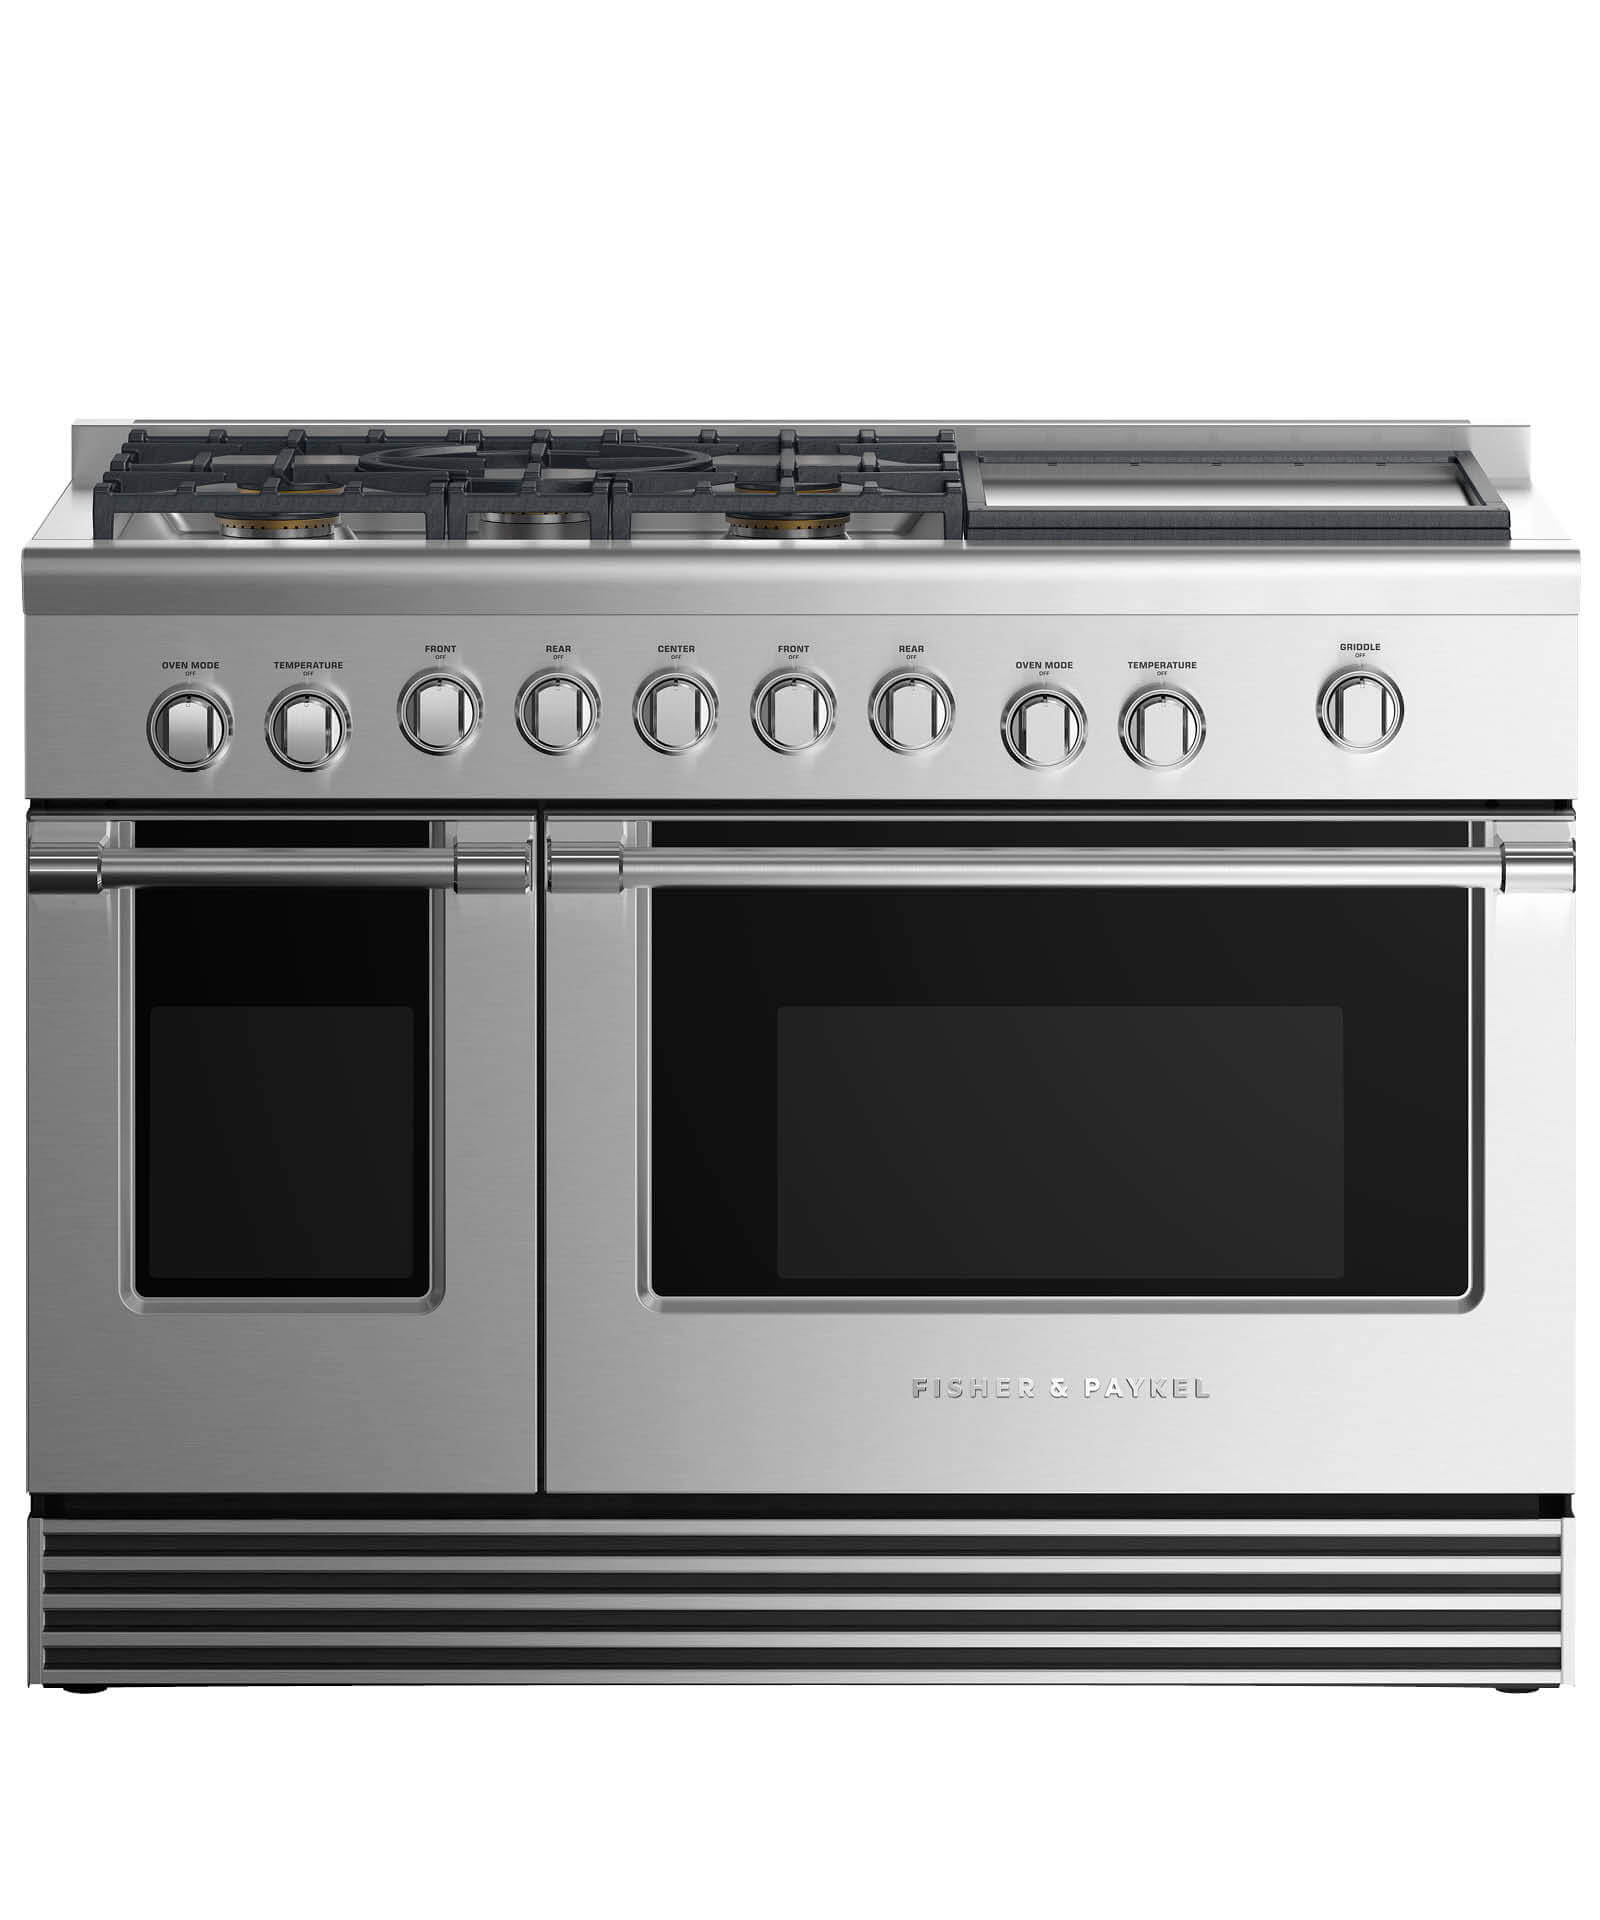 "Fisher and Paykel Dual Fuel Range 48"", 5 Burners with Griddle"